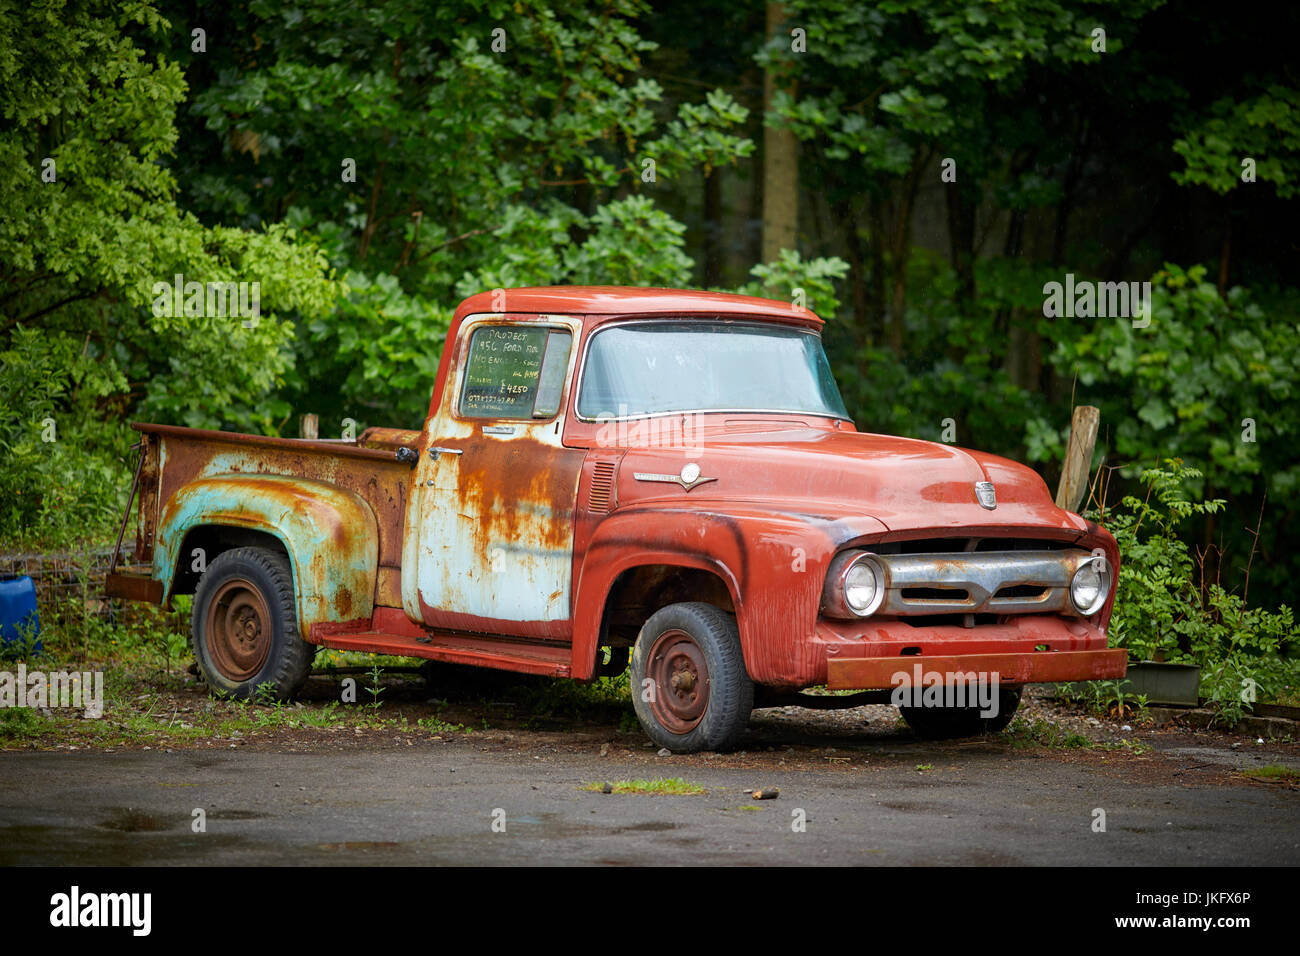 rustyOld american classic cars in need of restoration for sale ...